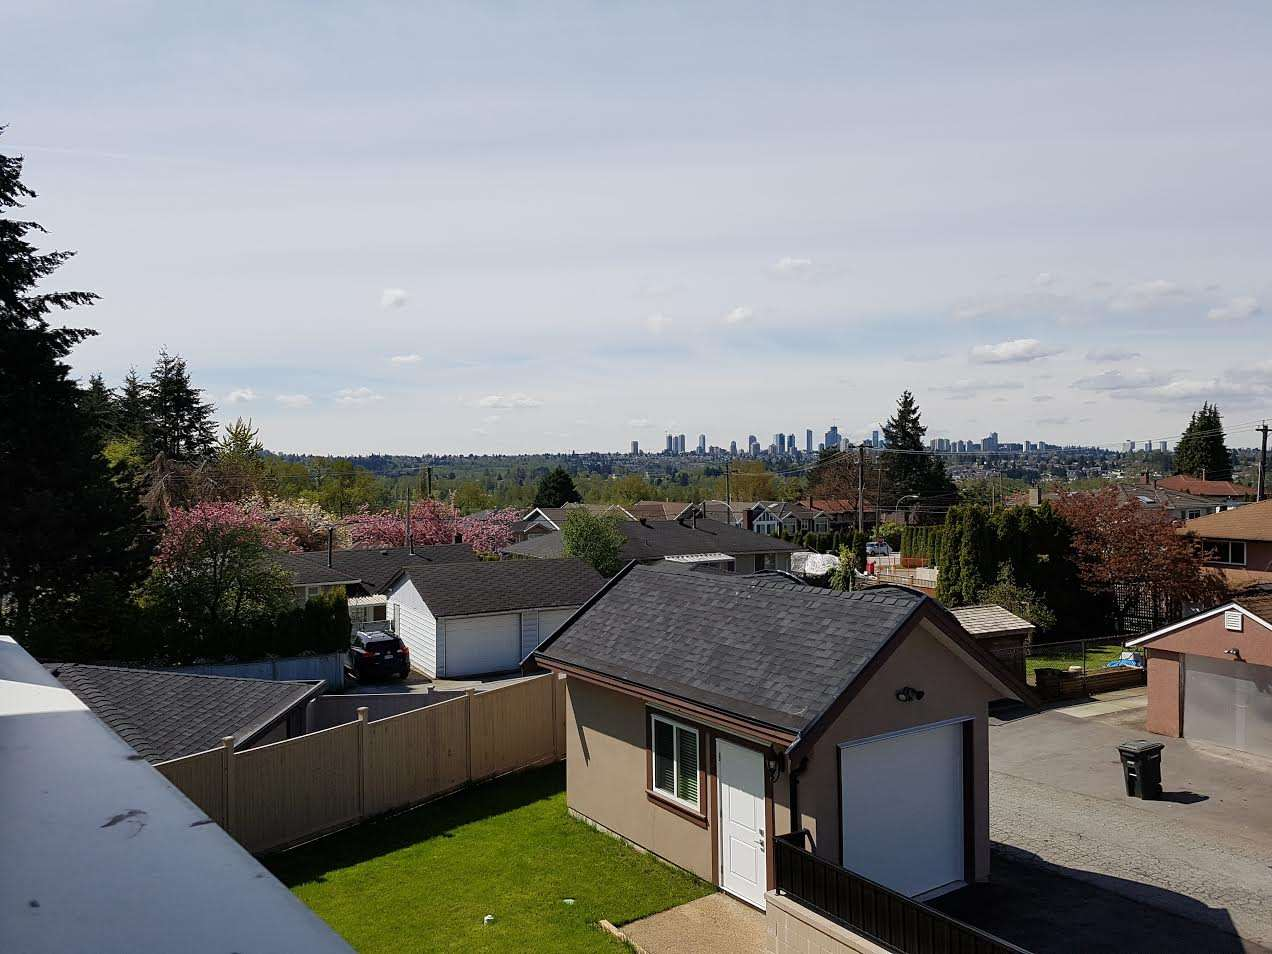 Wow!! This warranteed, quality built 4800+ s.f. new home is on a quiet Montecito street in the Burnaby North Secondary catchment. Prime lot, lane access, view to Metrotown. All 4 bdrms up have a view and are ensuite (master with steam shower), Shower in the main floor powder room, (7 full bathrooms!!), Legal 2 bedroom nanny suite PLUS home theater room with bar and guest bedroom in bsmt. Tile on radiant-heated concrete floors, HVAC, Heat pump, Air conditioning, spicy kitchen, over-height ceilings on all floors, 2 detached garages off the lane makes unique, easy pull-in, way too many features to mention.  Fabulous finishing and attention to detail!!! COMPARE!! UNBEATABLE VALUE & QUALITY!!!